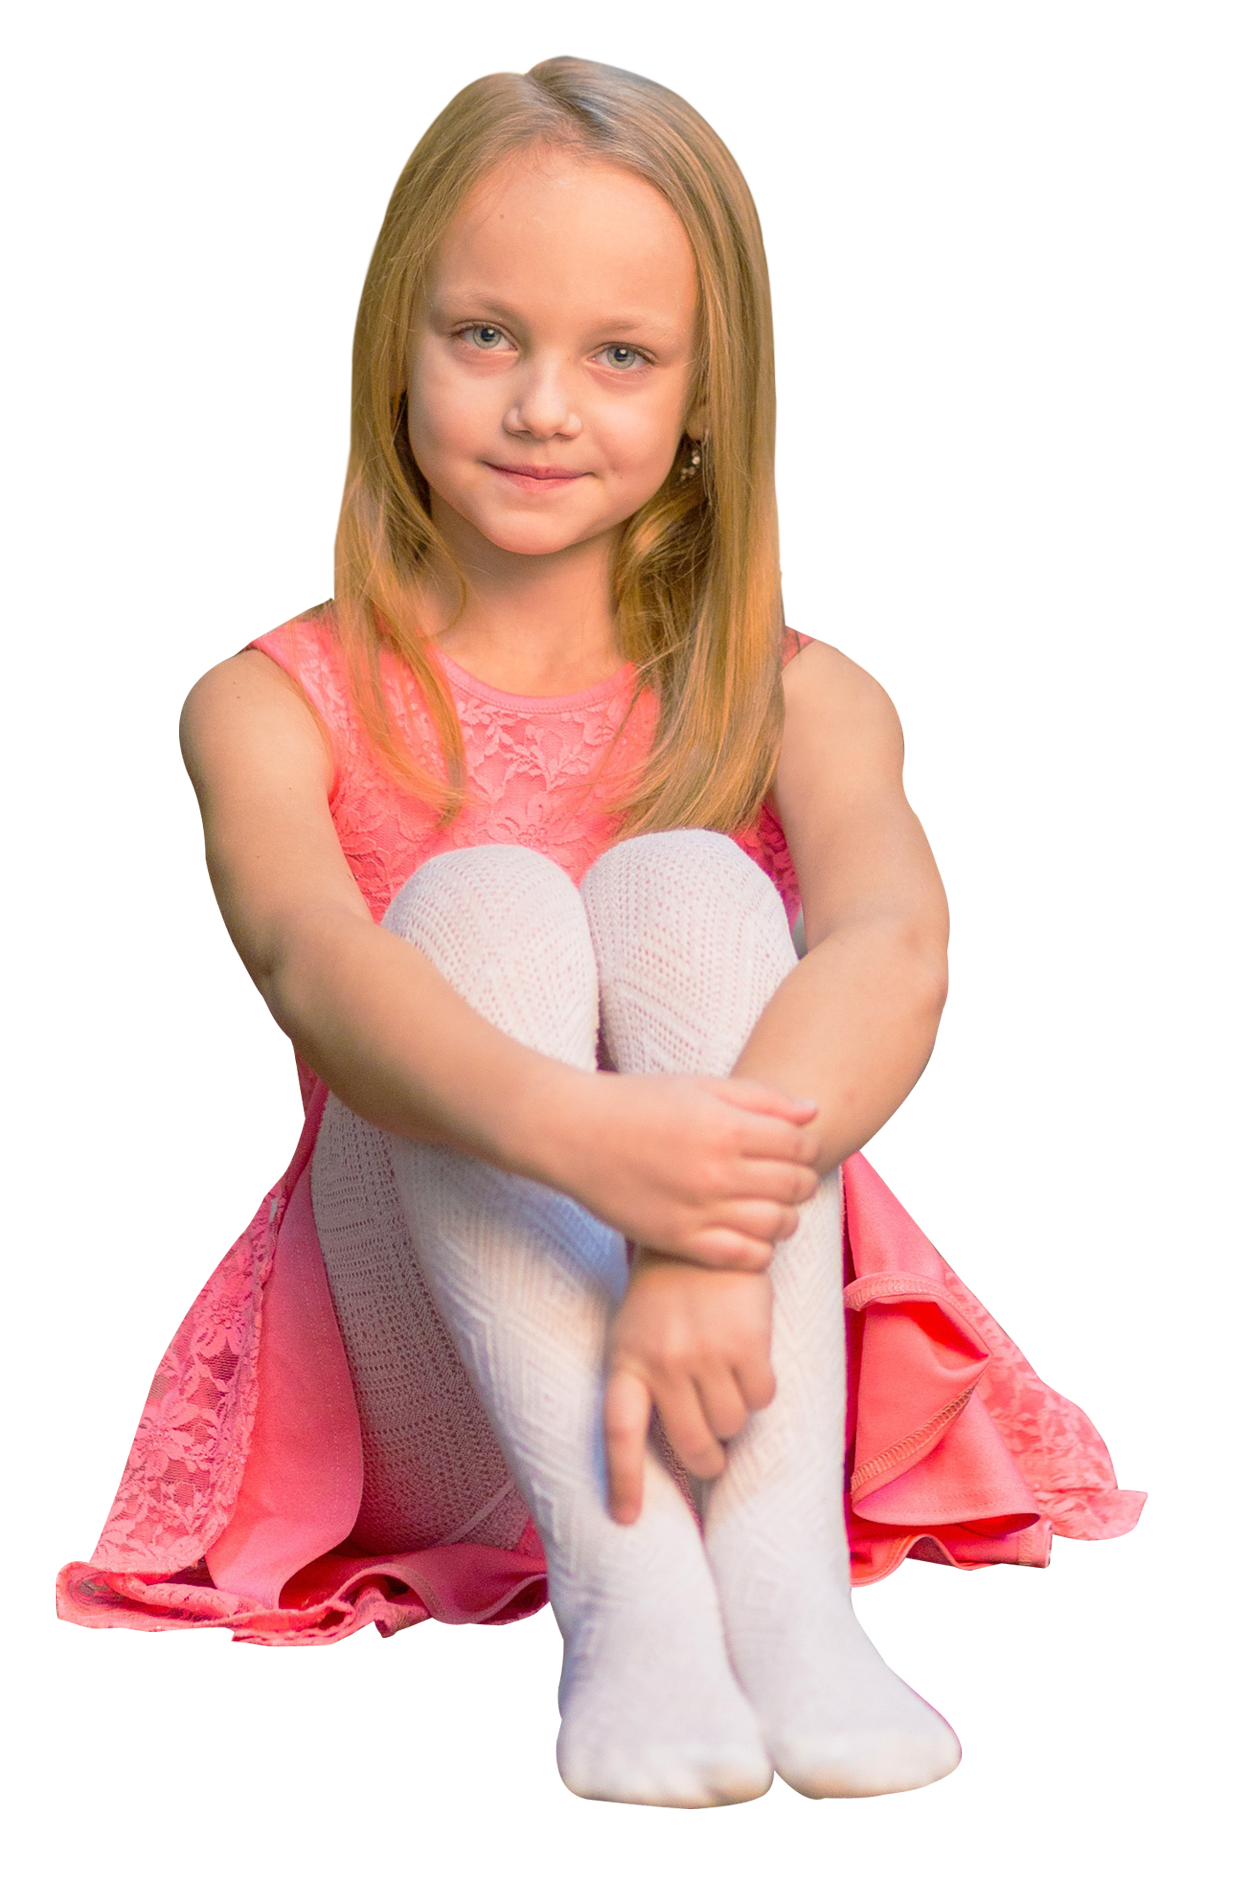 Young clipart young baby. Child girl png transparent